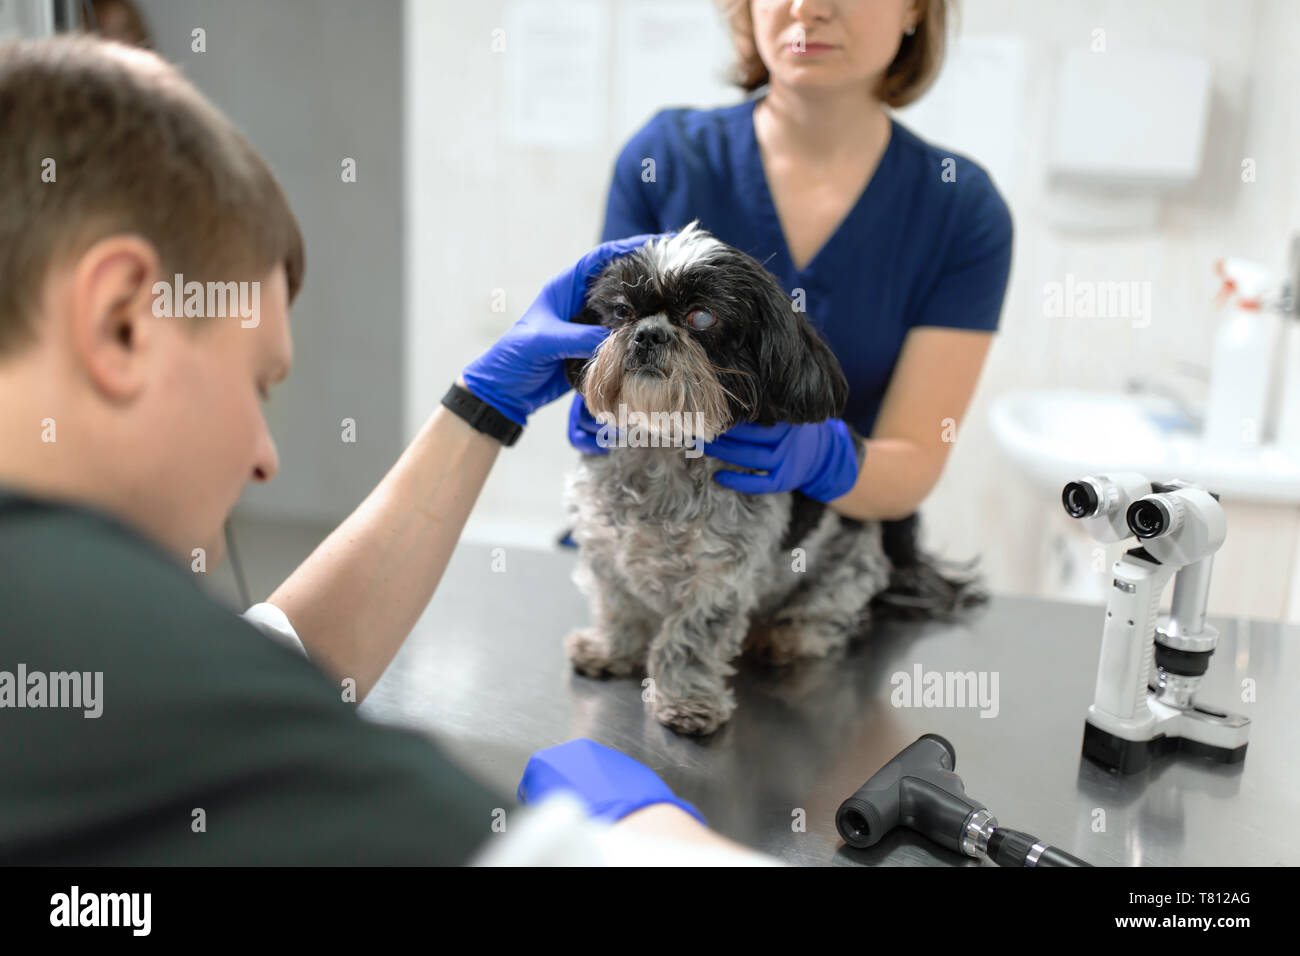 Veterinar, ophthalmologist examine the injured eye of a dog with a Veterinary, ophthalmologist prepare the a dog with injured eye to examine with a sl - Stock Image